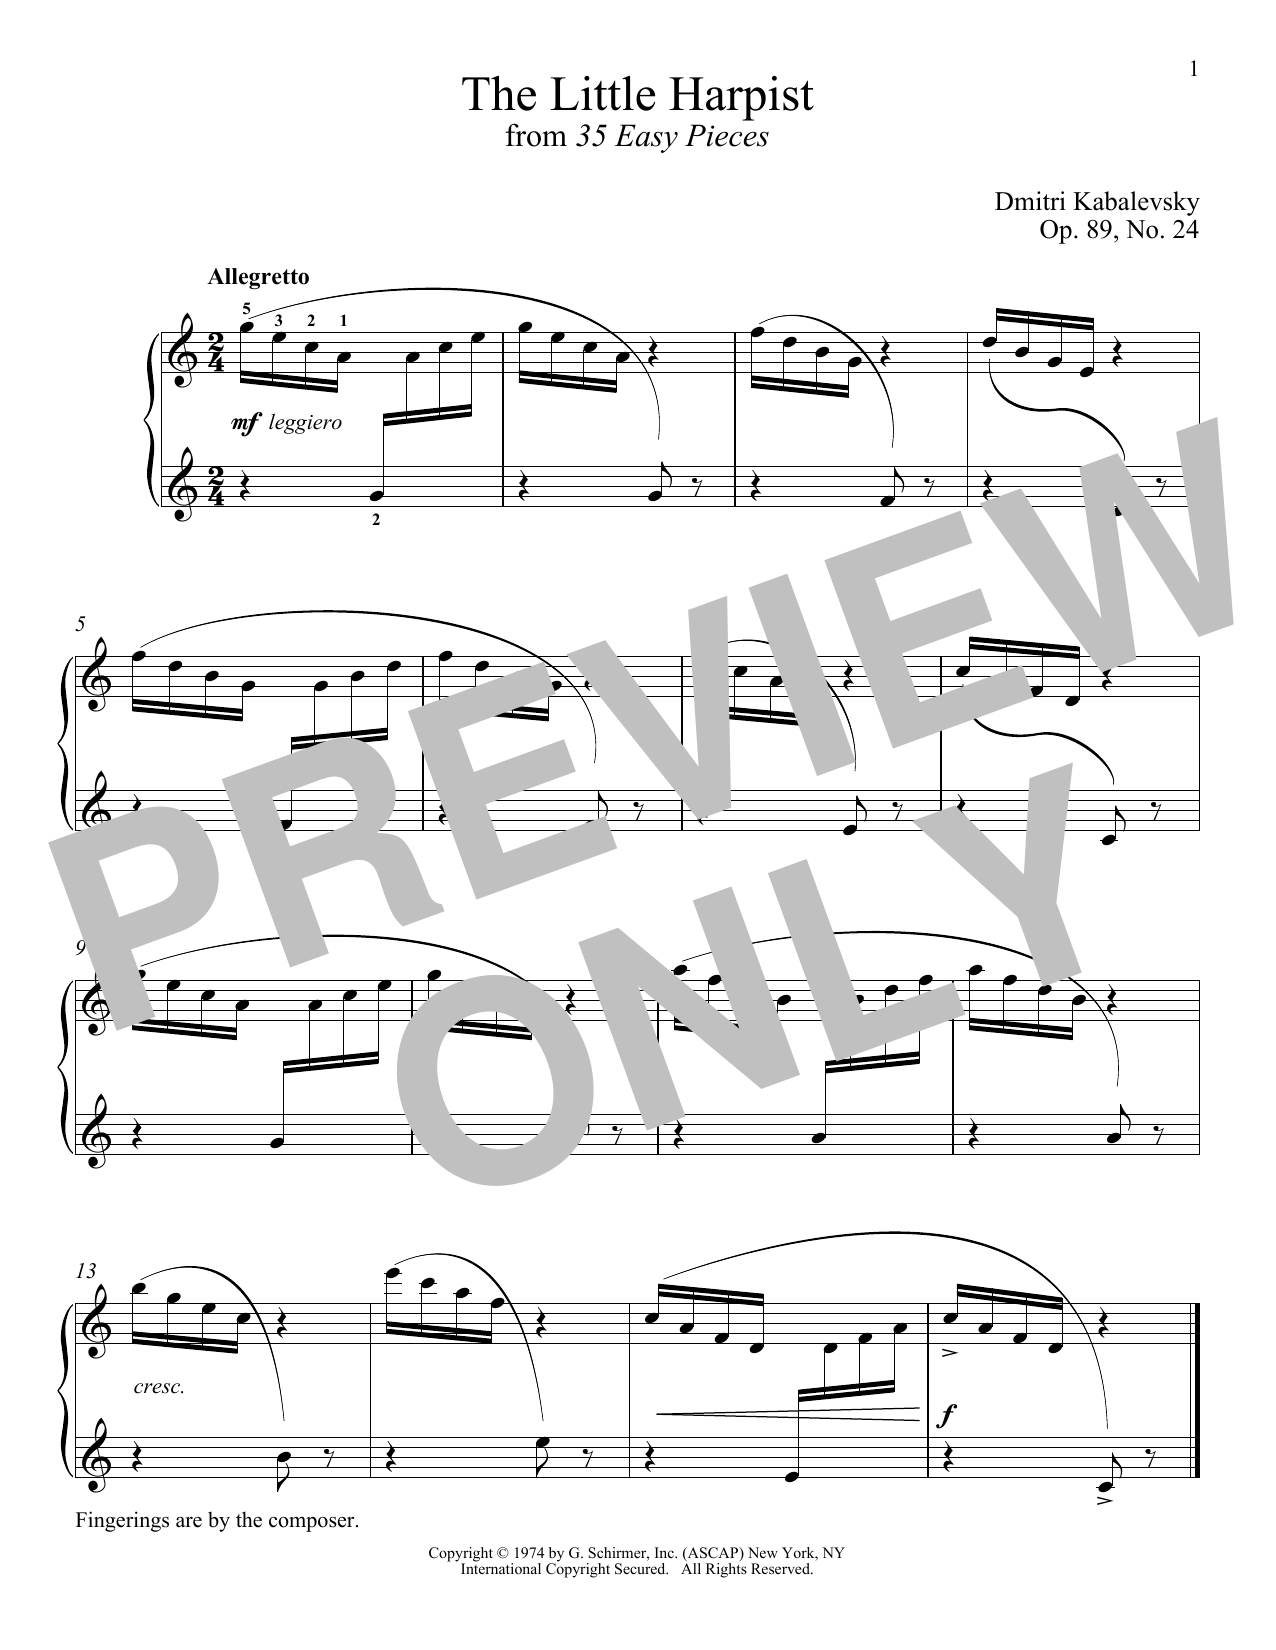 Dmitri Kabalevsky The Little Harpist, Op. 89, No. 24 sheet music notes and chords. Download Printable PDF.